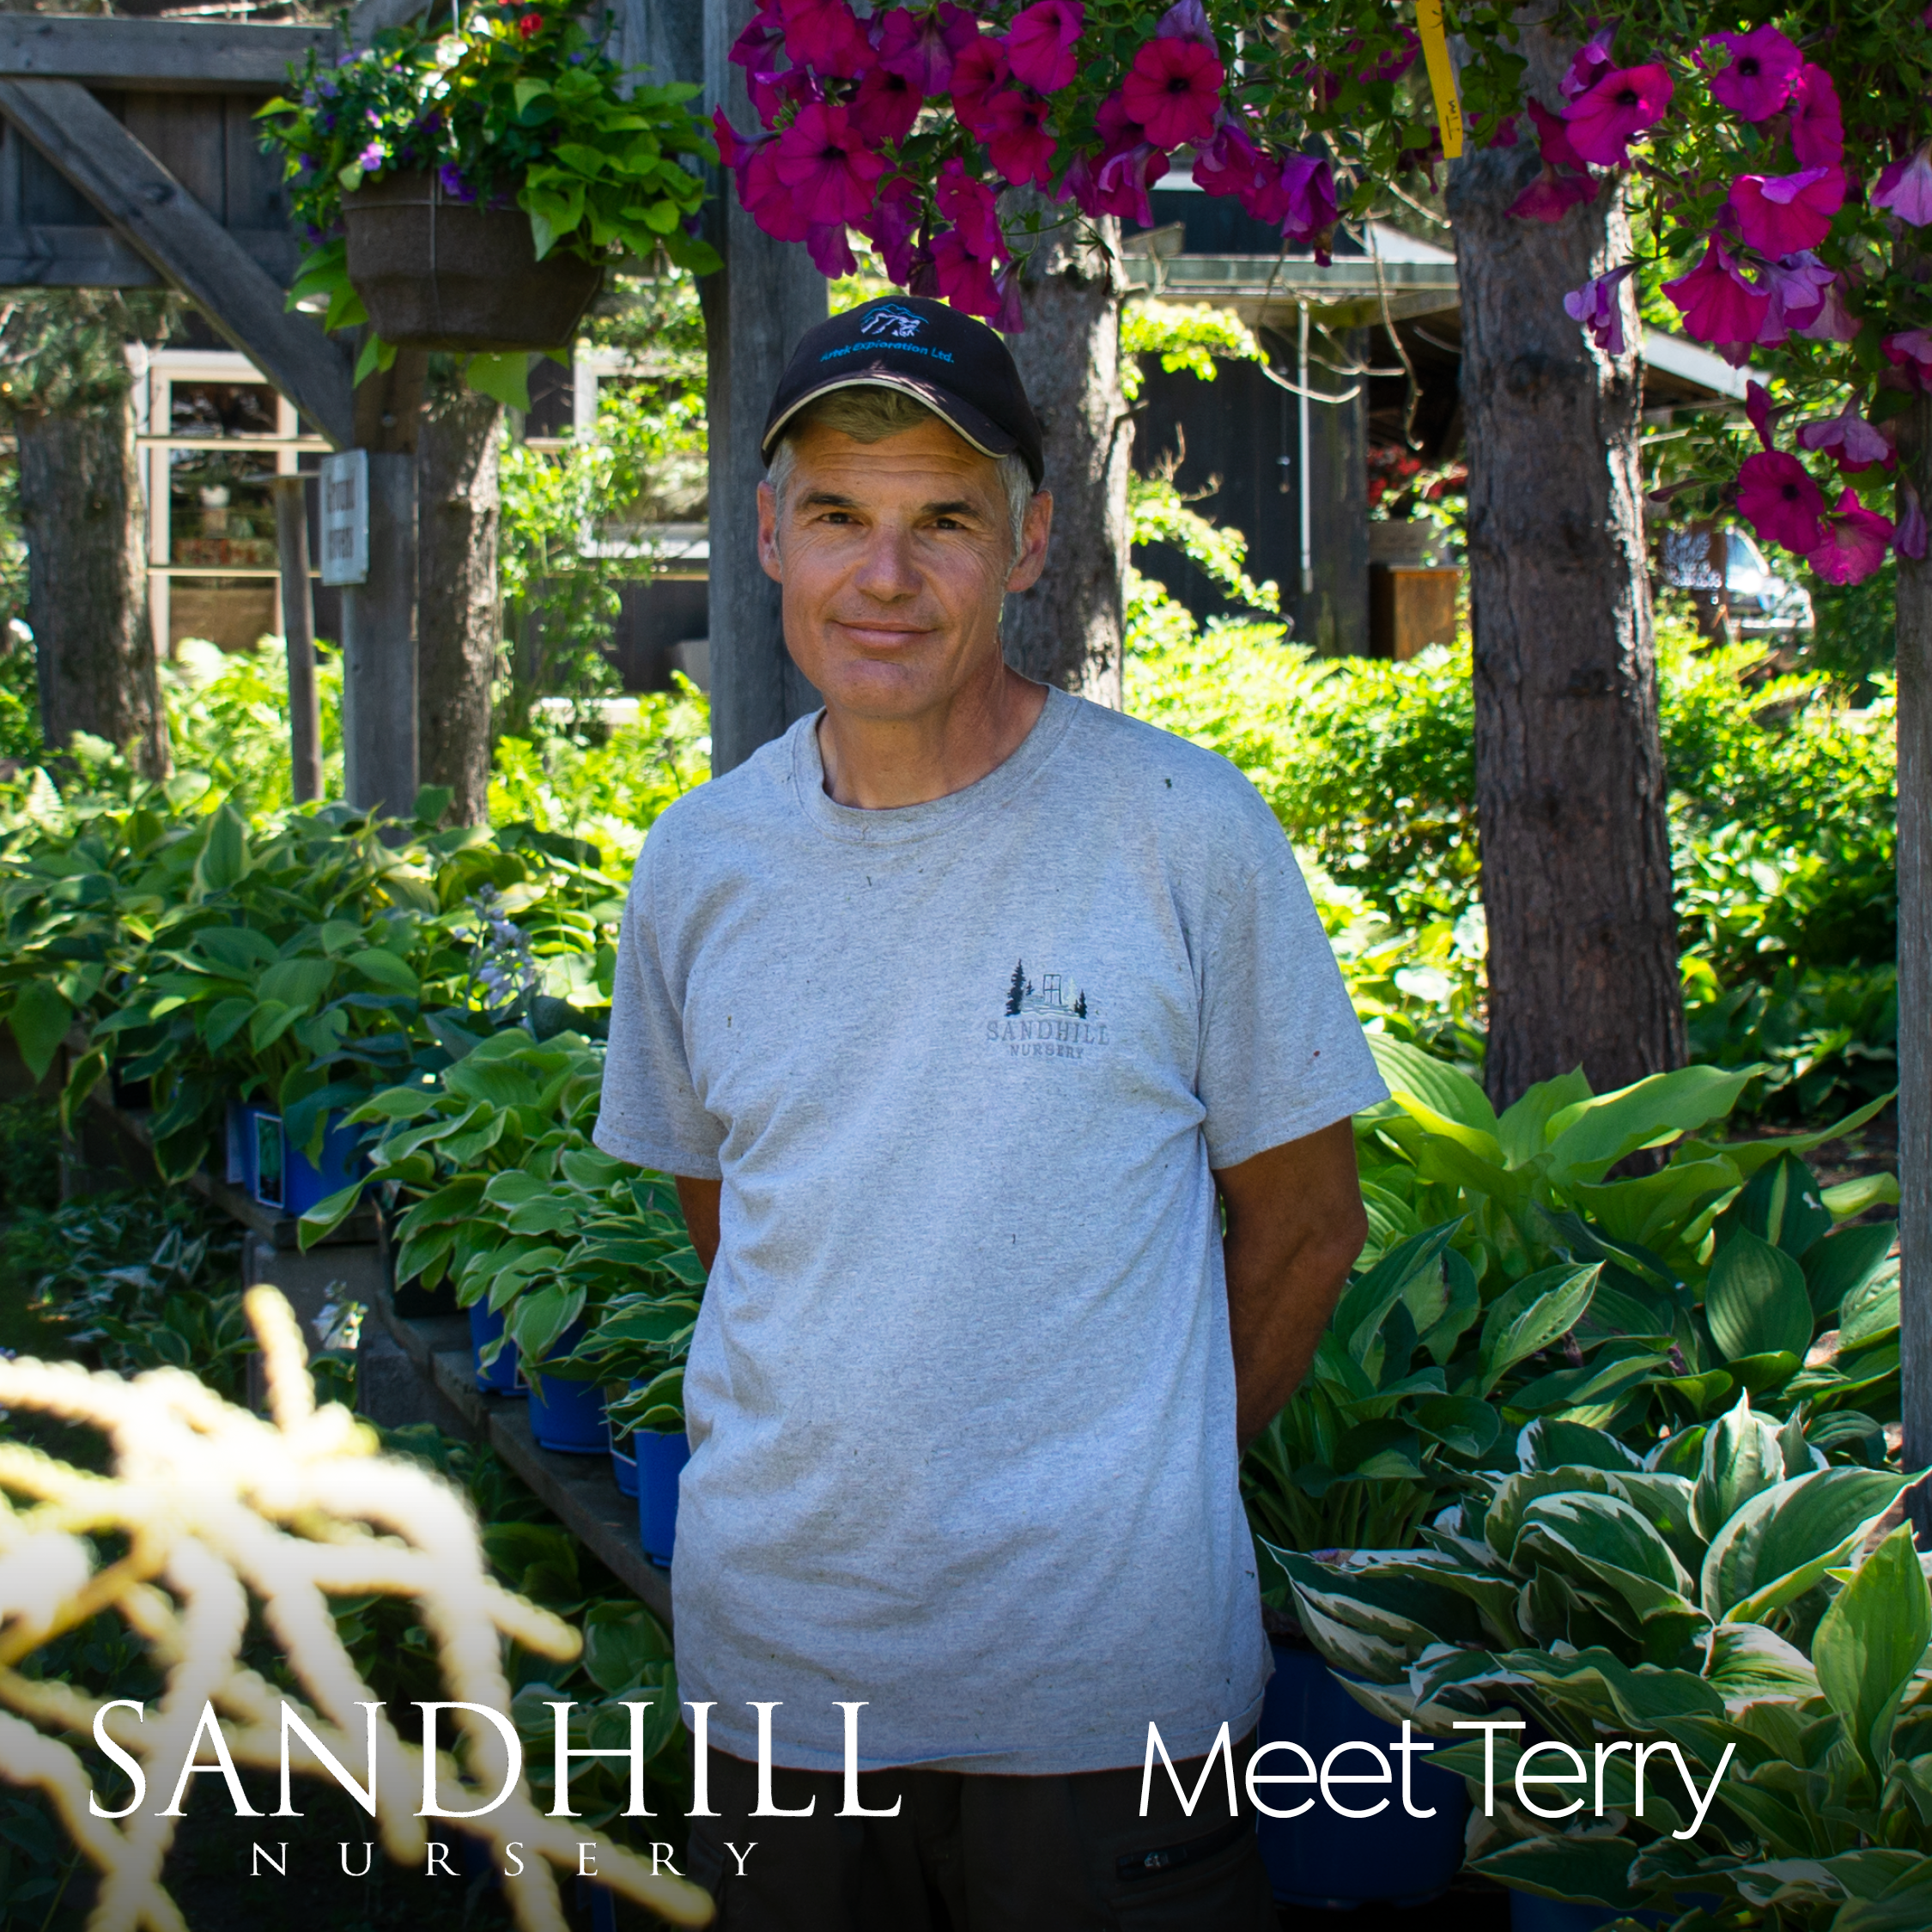 Another familiar and friendly Sandhill face! Terry is a firm believer that all Muskoka gardens can be impressive. Choose the right plants and they will flourish in our sometimes tricky soil and weather conditions. It just takes a little expertise. And Terry would know, he has 90 acres of his own green space!